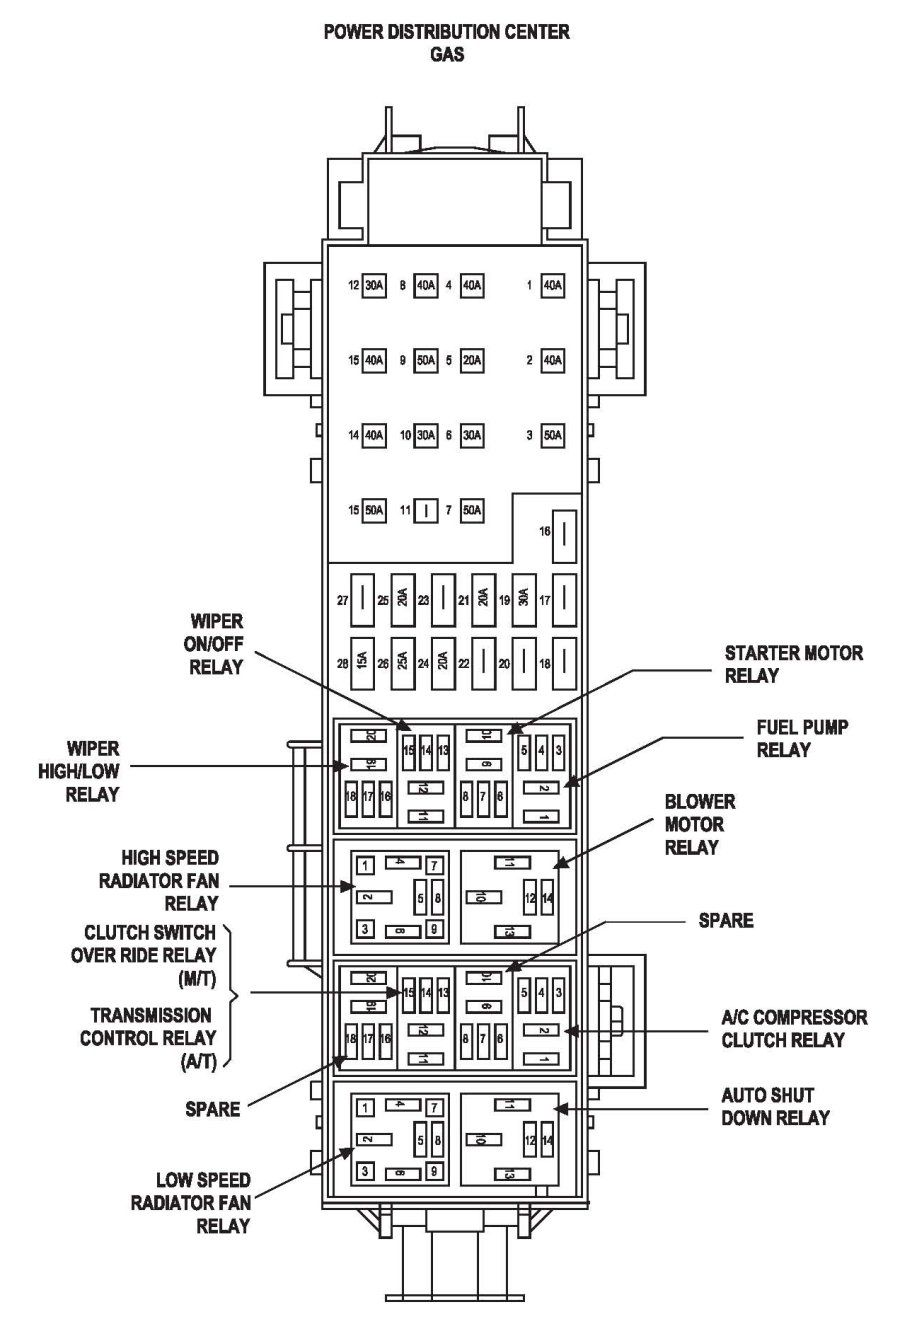 b3536c3739783eb19f827744cc42c3c4 jeep liberty fuse box diagram image details jeep liberty 2002 jeep liberty sport fuse box diagram at soozxer.org